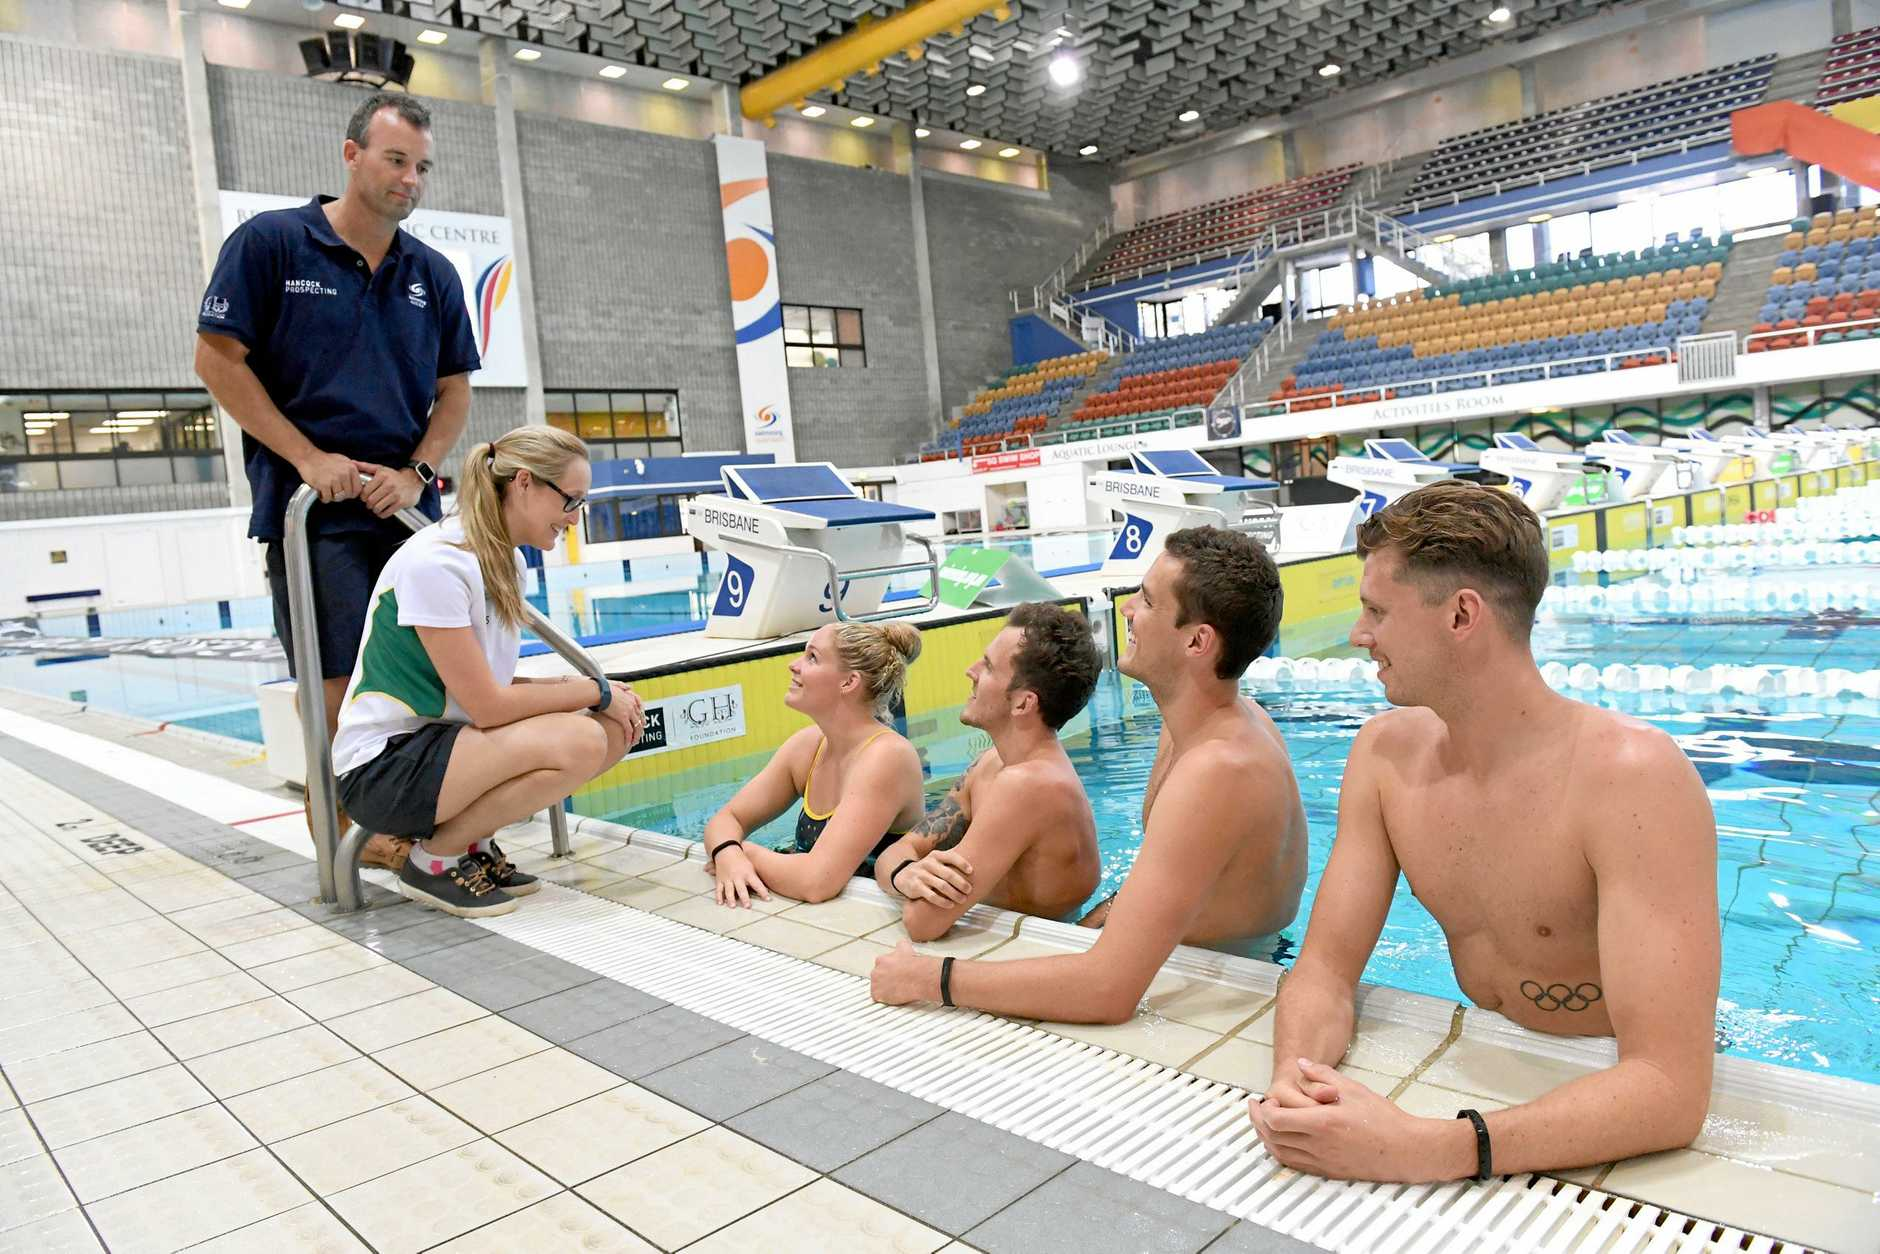 Fitbit has become the official supplier for Swimming Australia. From left: Paralympic Program Director and former triple Olympian Adam Pine, Danielle Formosa, Leah Neale, Rick Pendleton, Blake Cochrane, and Thomas Fraser-Holmes.